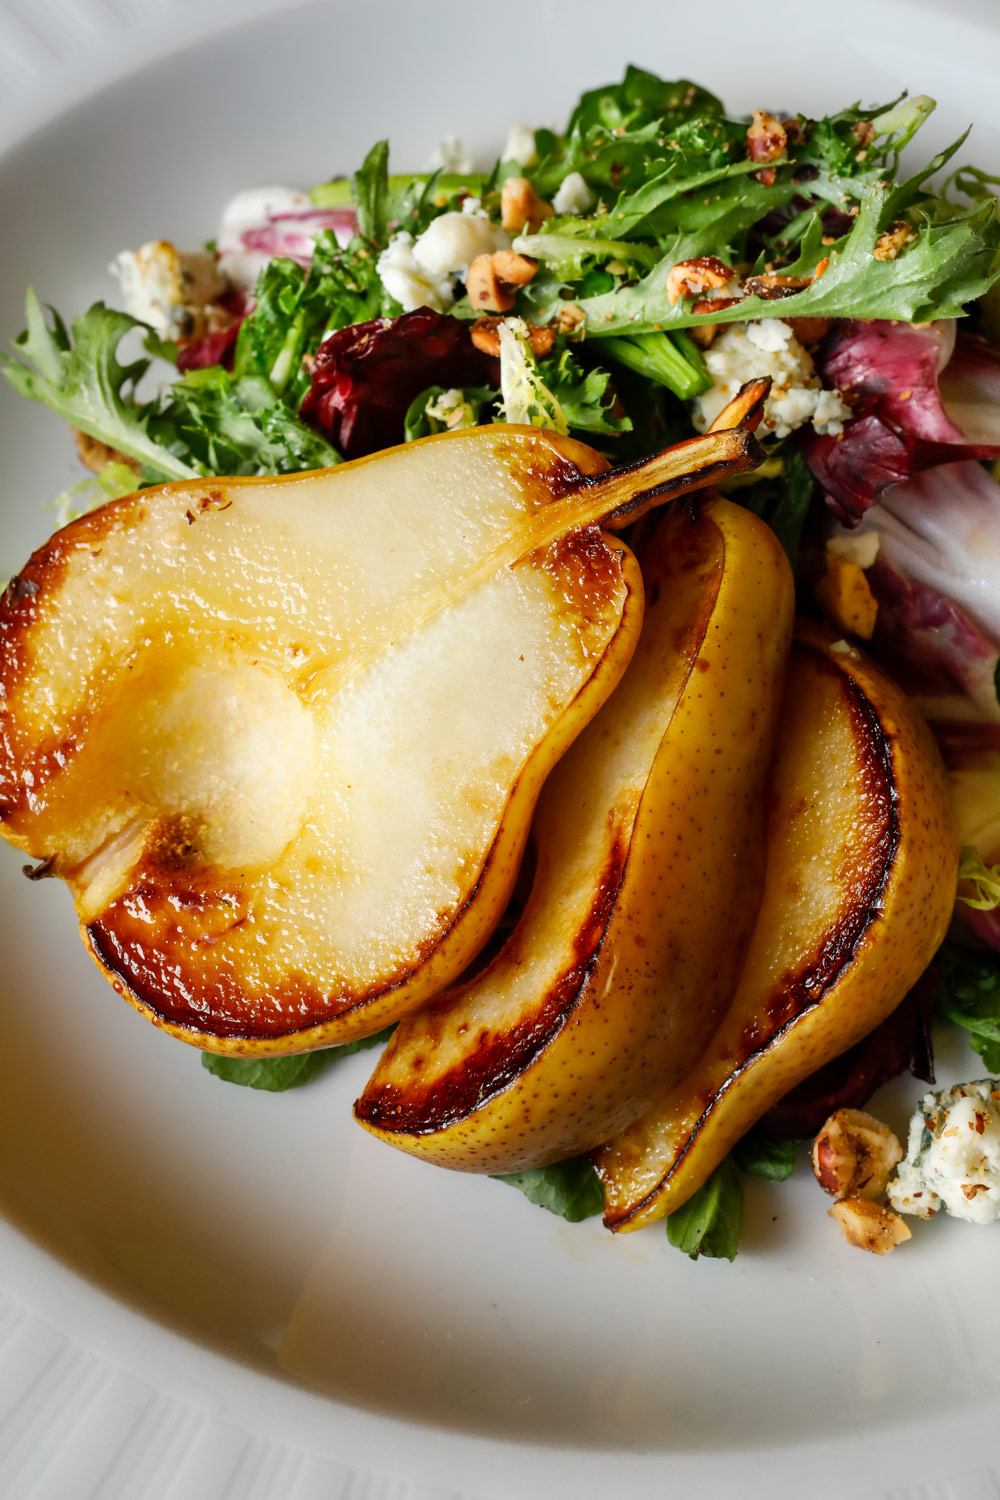 harvest-restaurant-madison-wisconsin-capitol-pear-salad-food-photography-ruthie-hauge.jpg